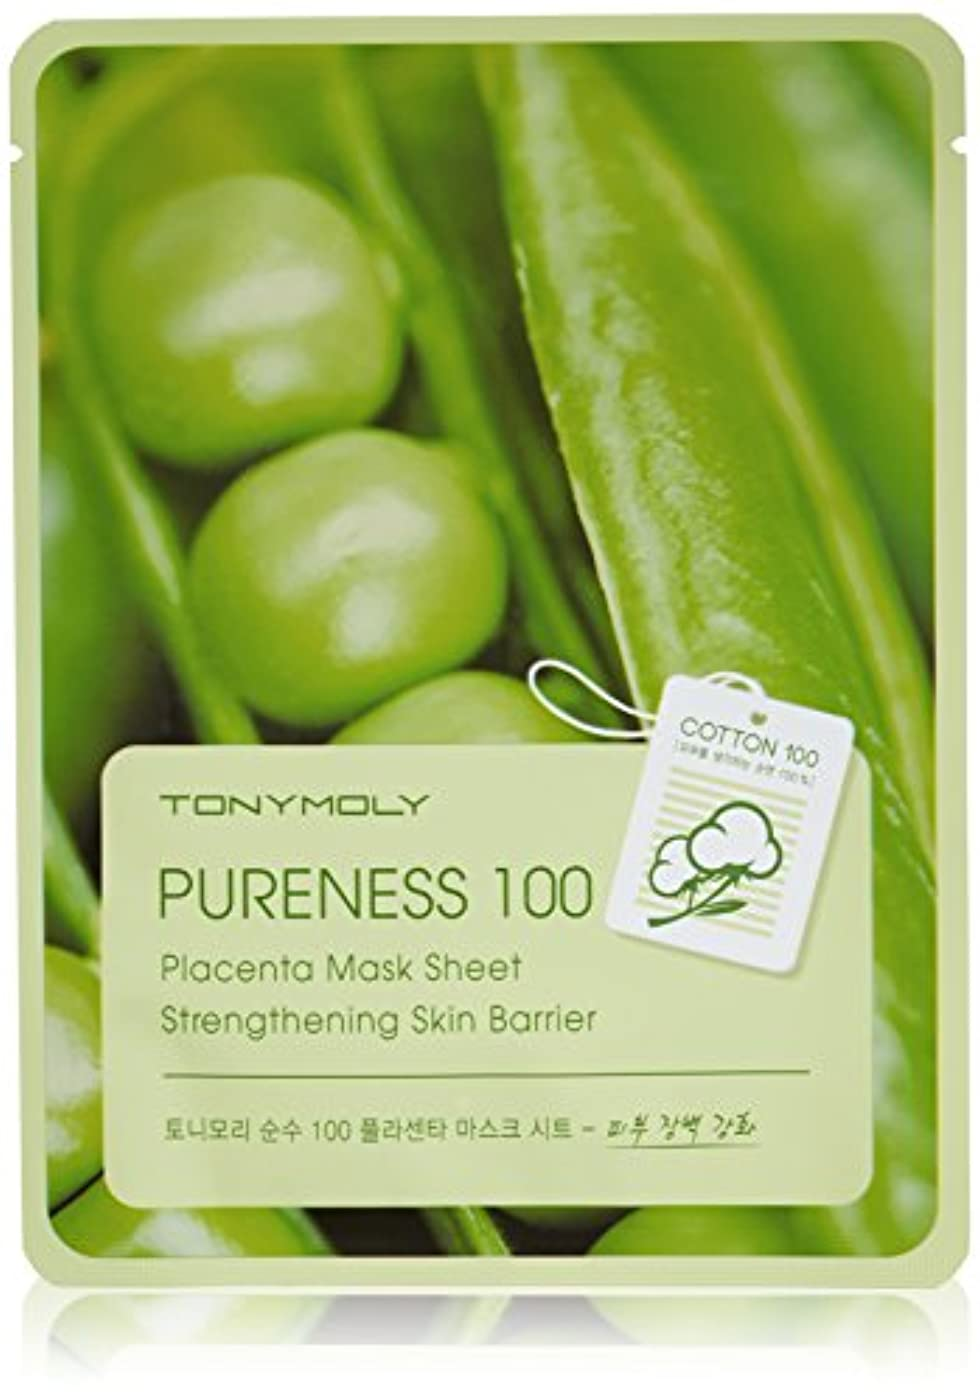 気づかない用心深いセントTONYMOLY Pureness 100 Placenta Mask Sheet Strengthening Skin Barrier (並行輸入品)